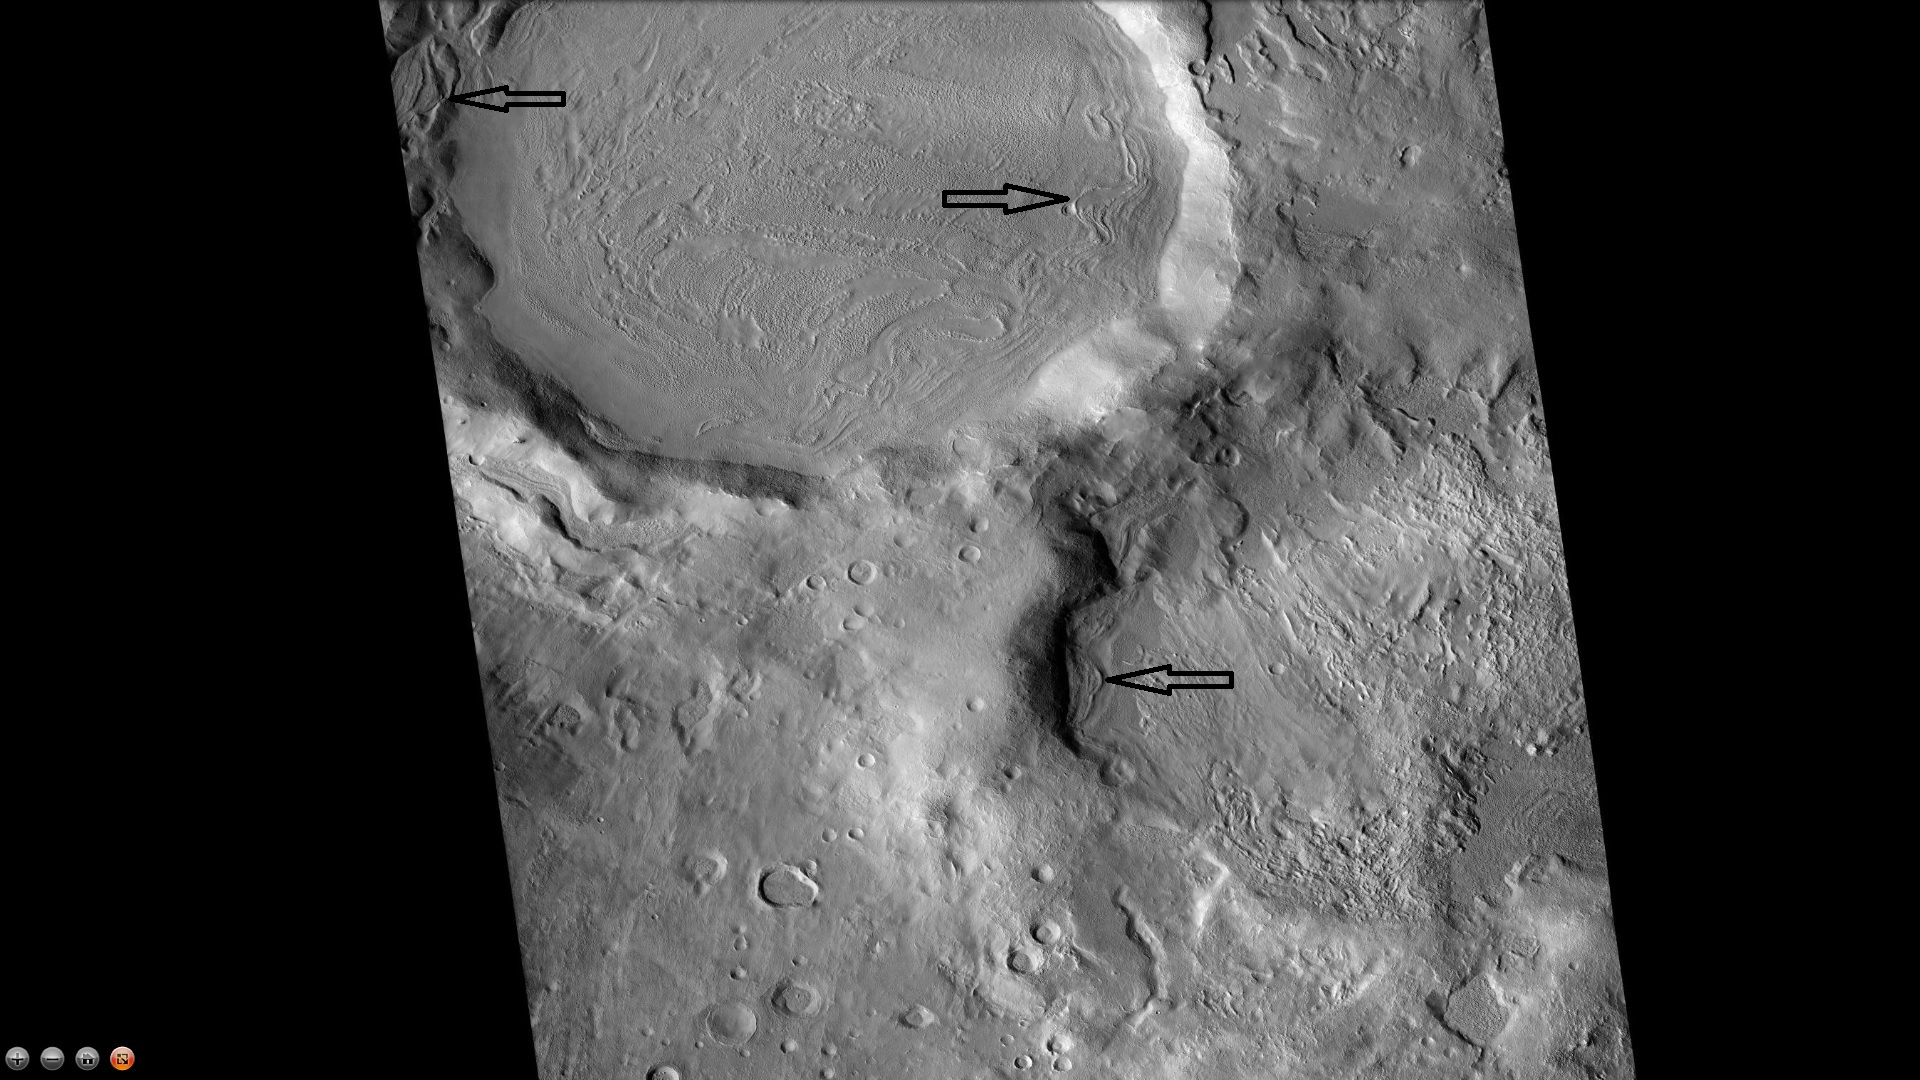 Northeast rim of Quenisset Crater, as seen by CTX camera (on Mars Reconnaissance Orbiter). Arrows indicate old glaciers.